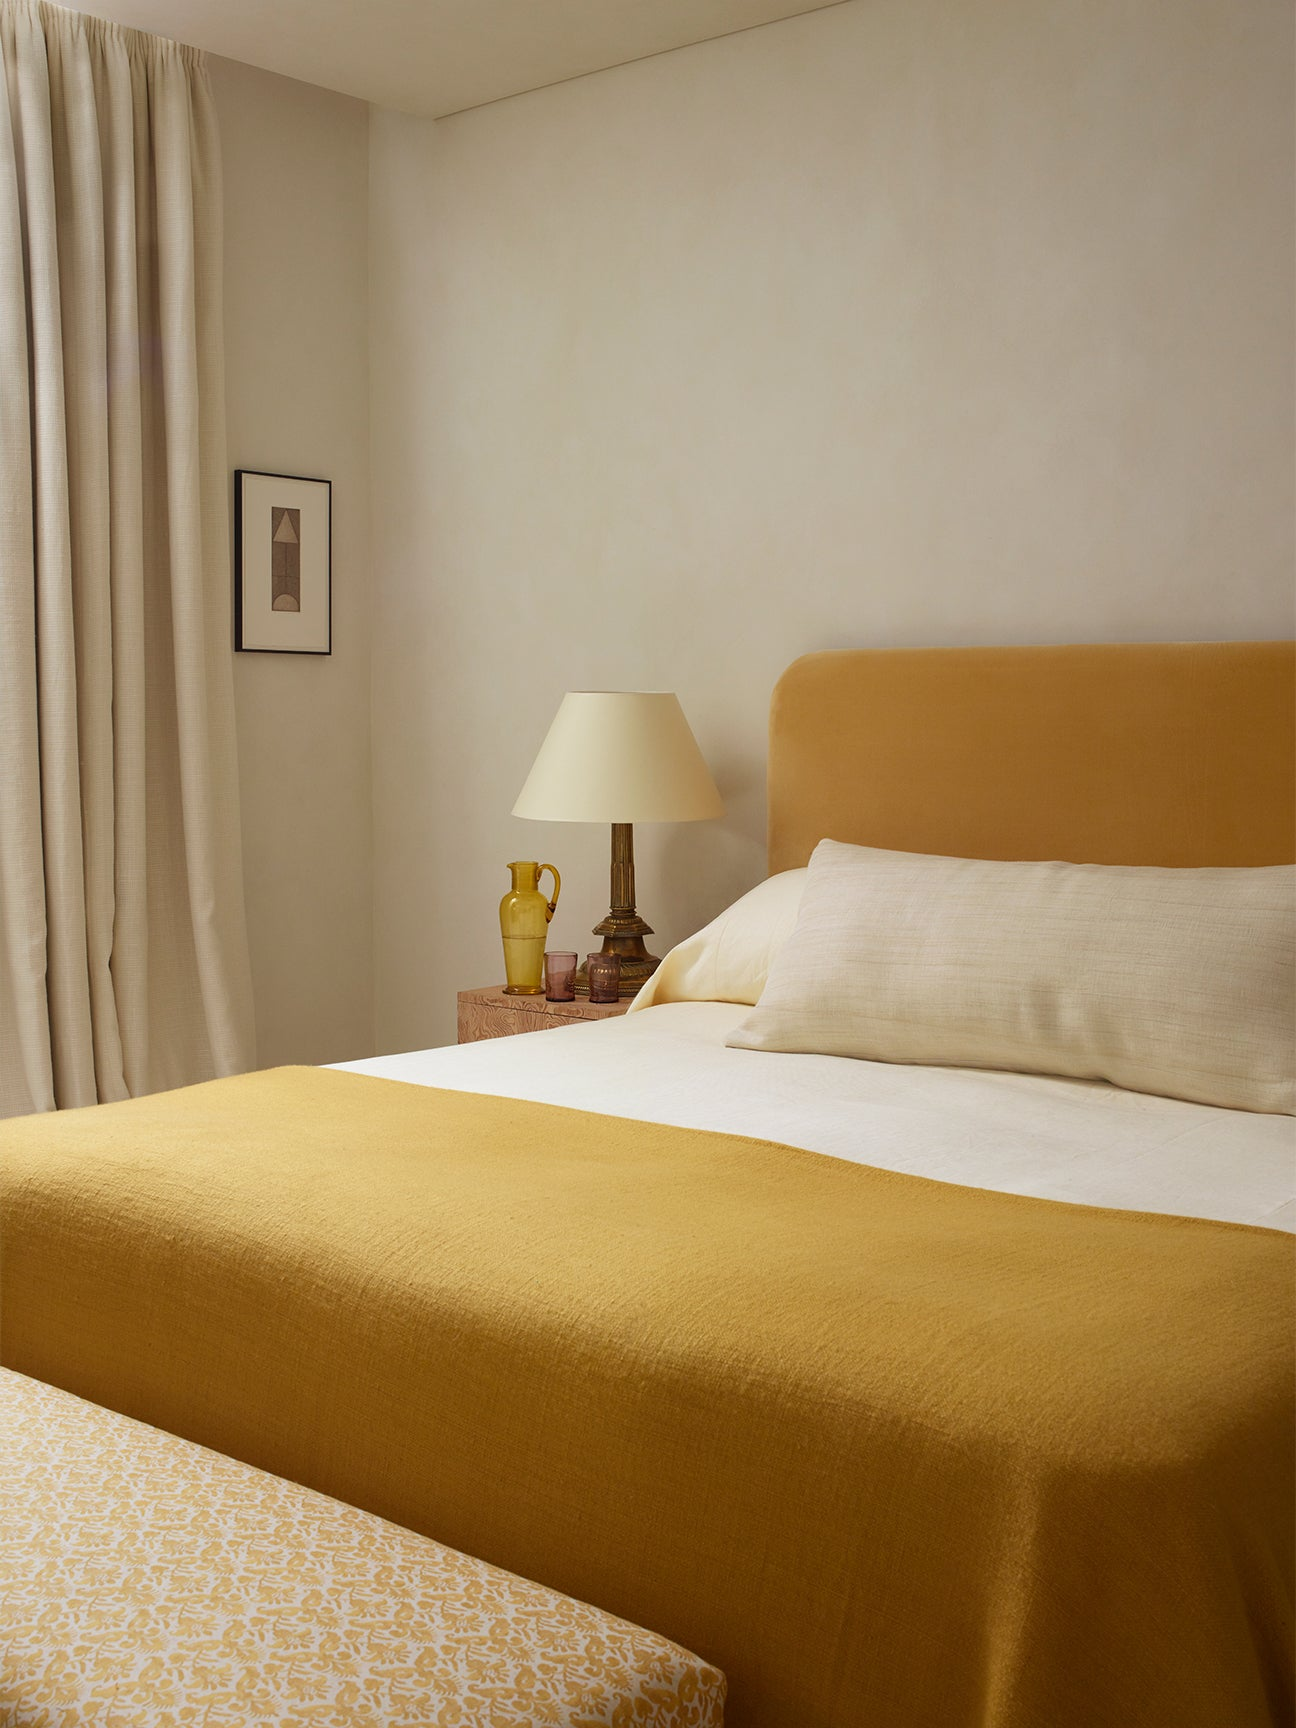 Minimalist bed with matching yellow headboard and quilt